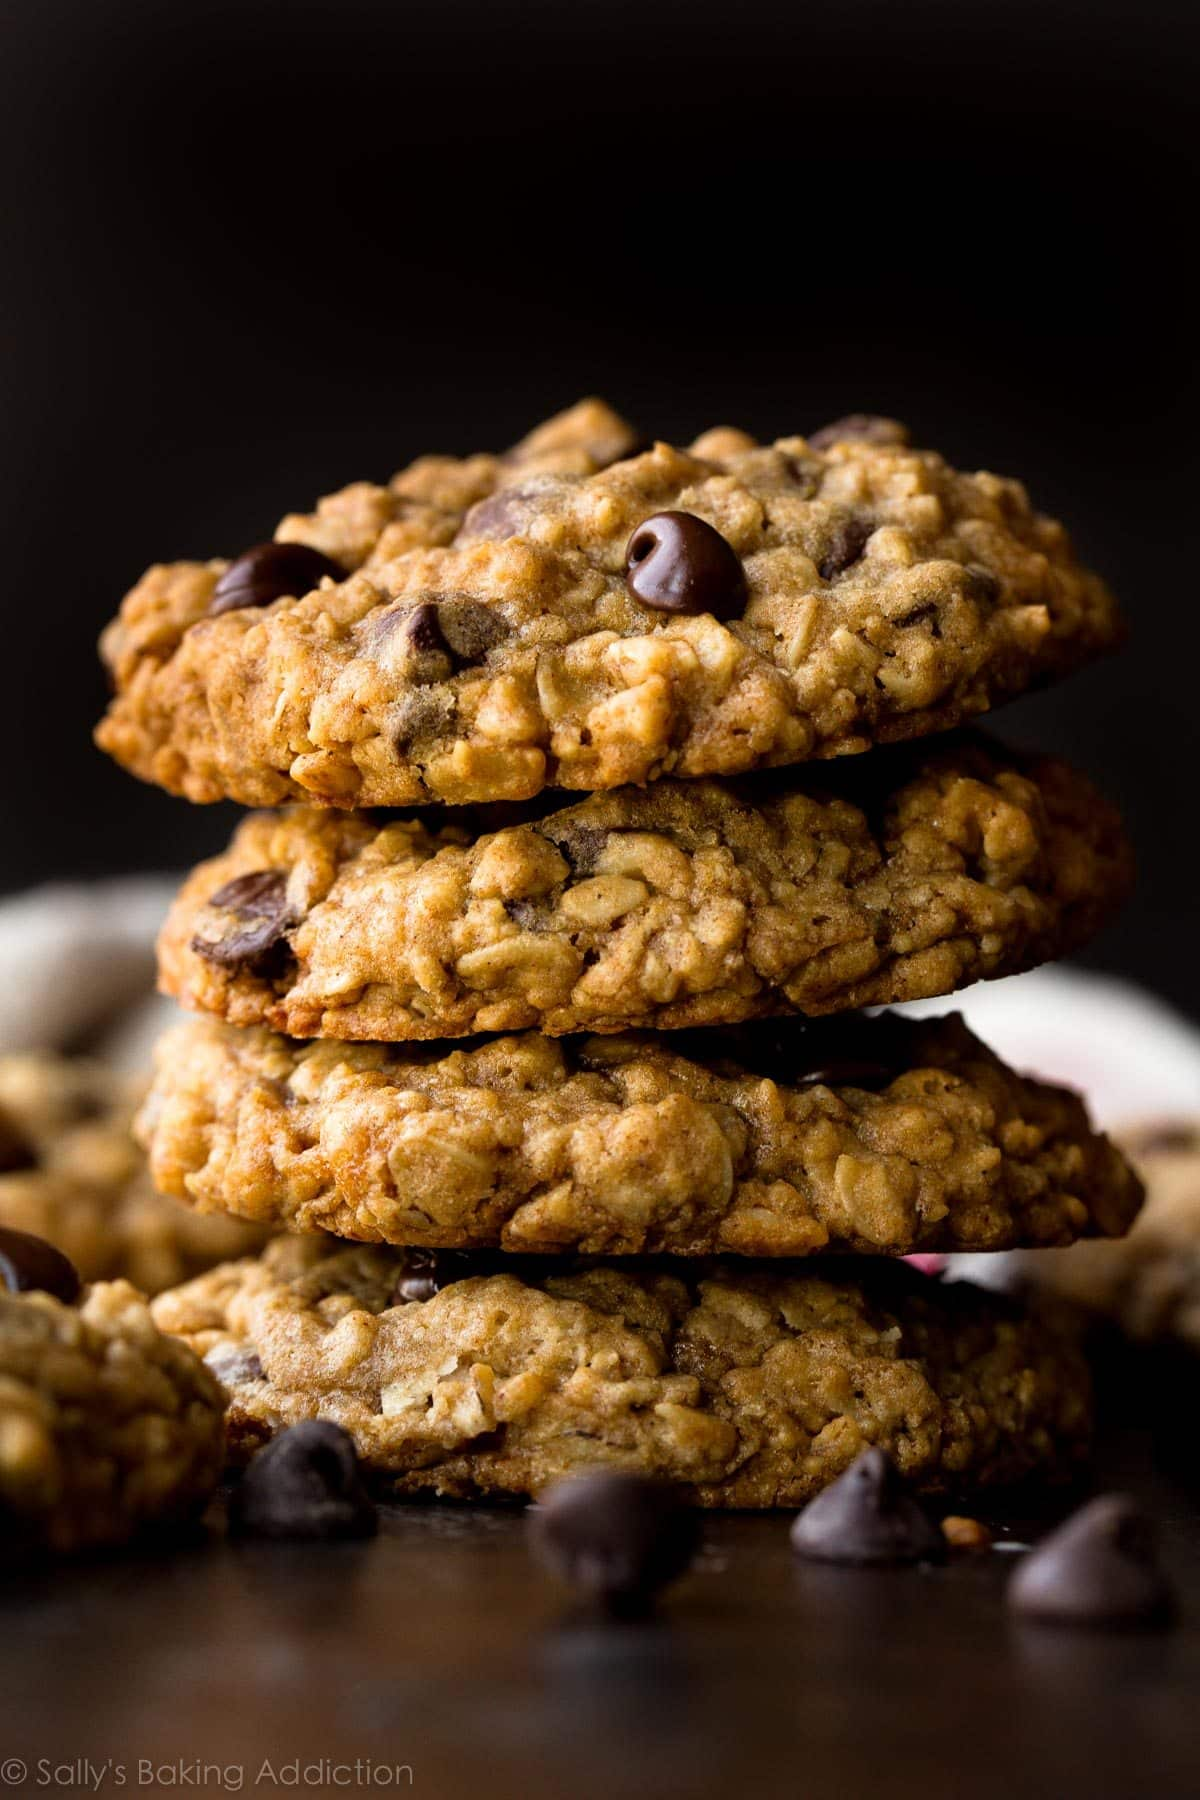 Soft & Chewy Oatmeal Chocolate Chip Cookies - Sallys Baking Addiction